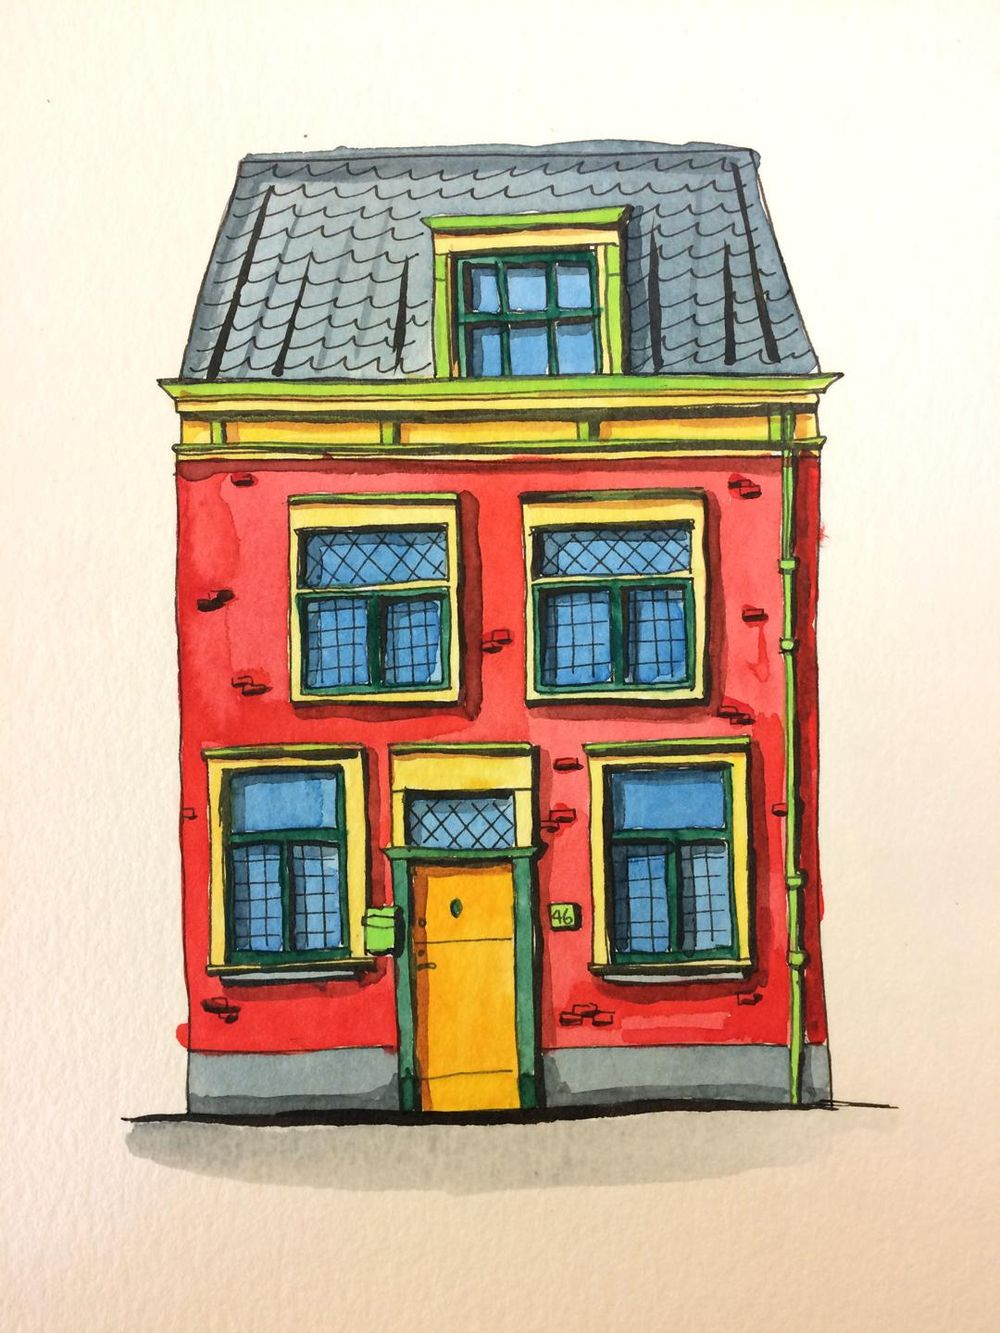 colorful Leiden house - image 3 - student project